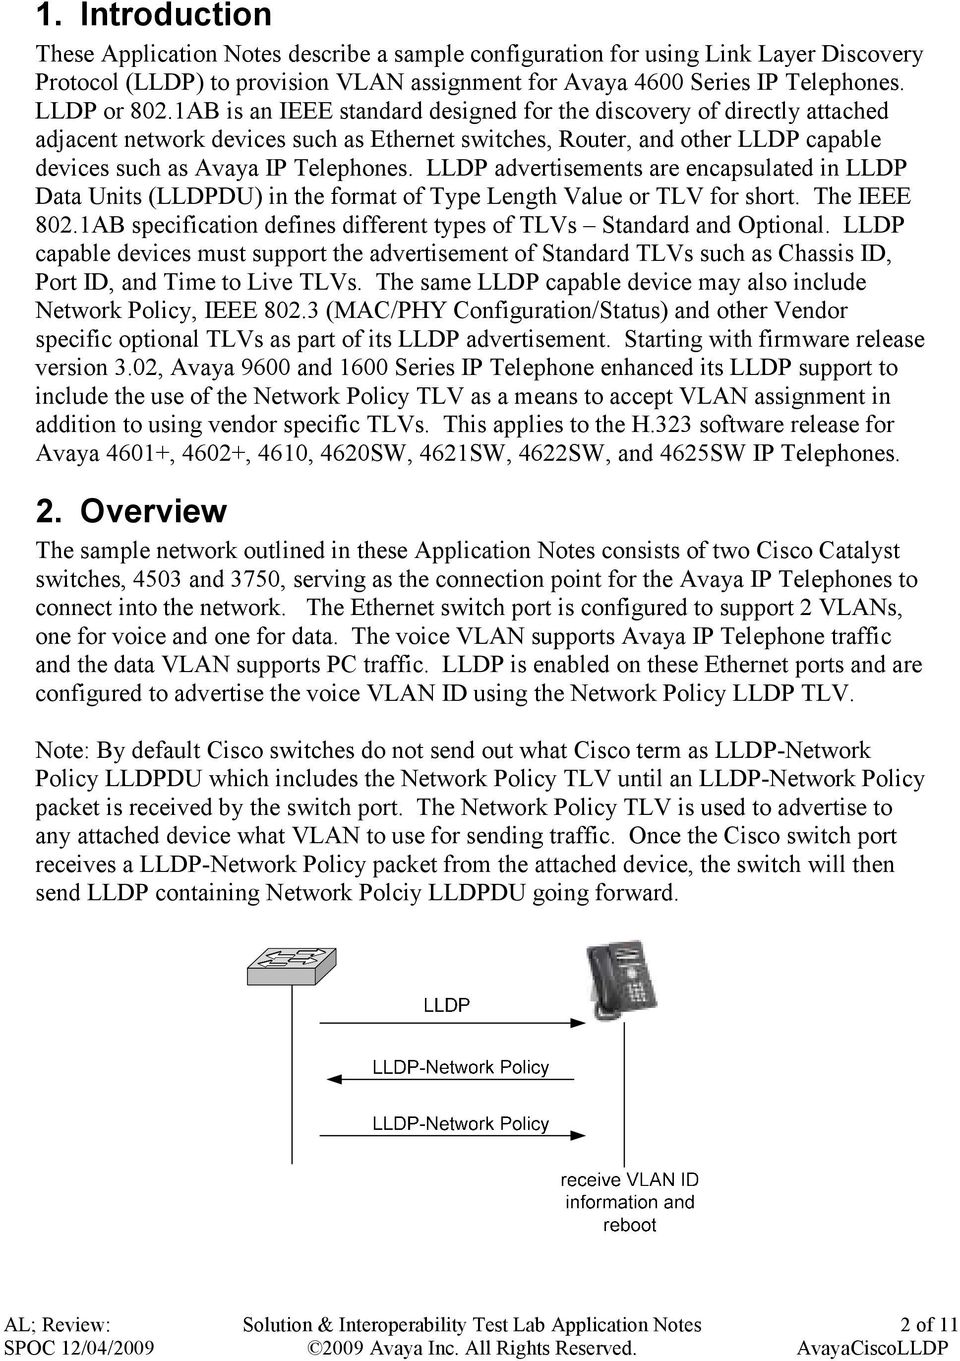 LLDP advertisements are encapsulated in LLDP Data Units (LLDPDU) in the format of Type Length Value or TLV for short. The IEEE 802.